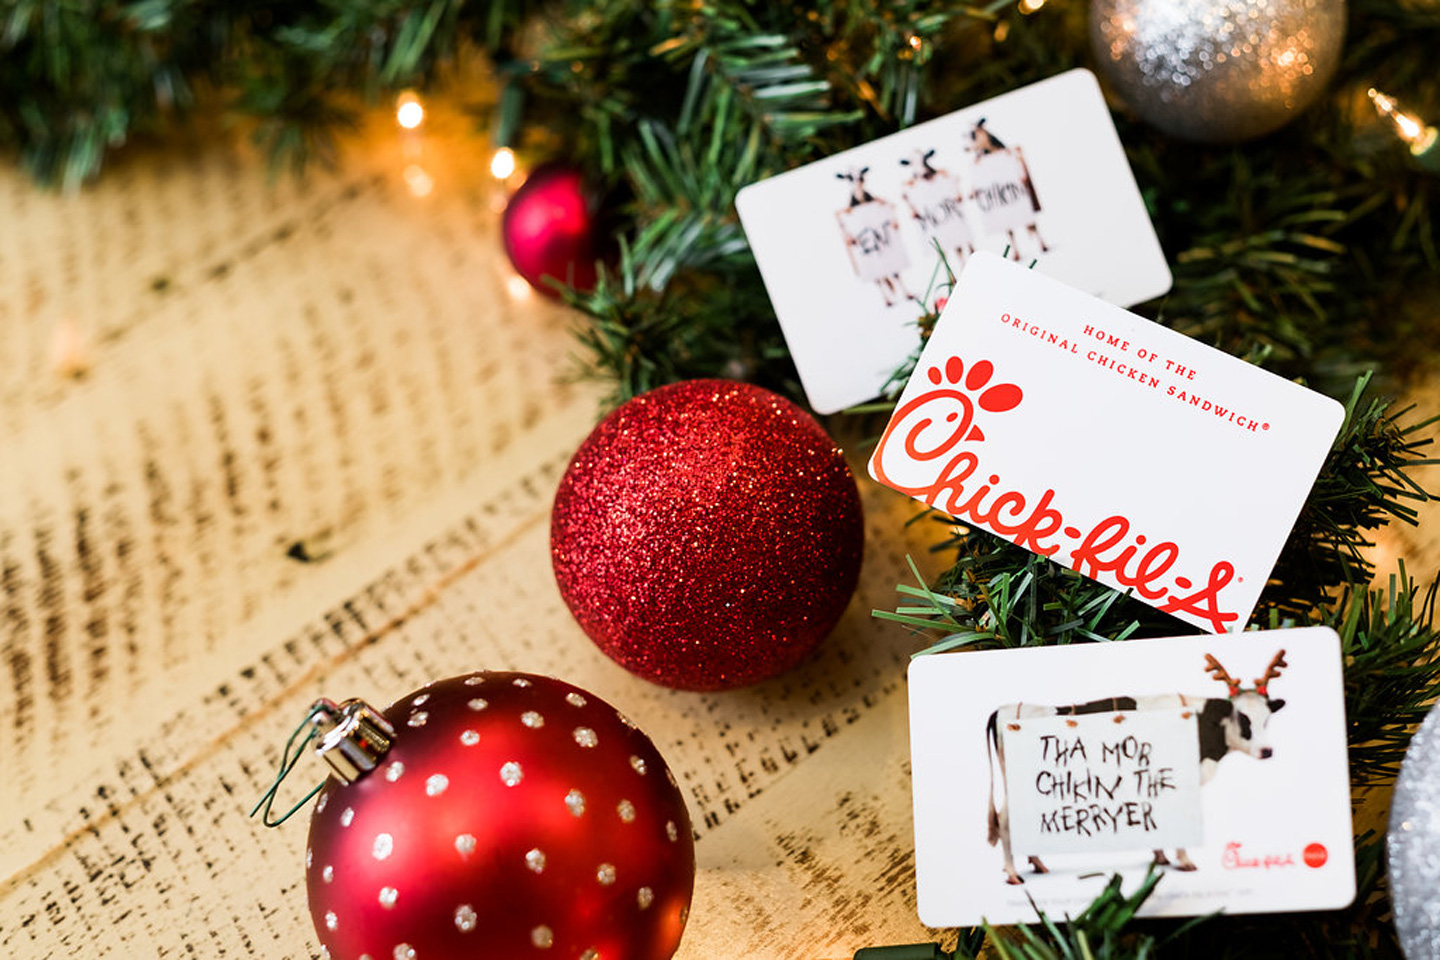 3 Reasons To Give A Chick Fil A Gift Card As A Holiday